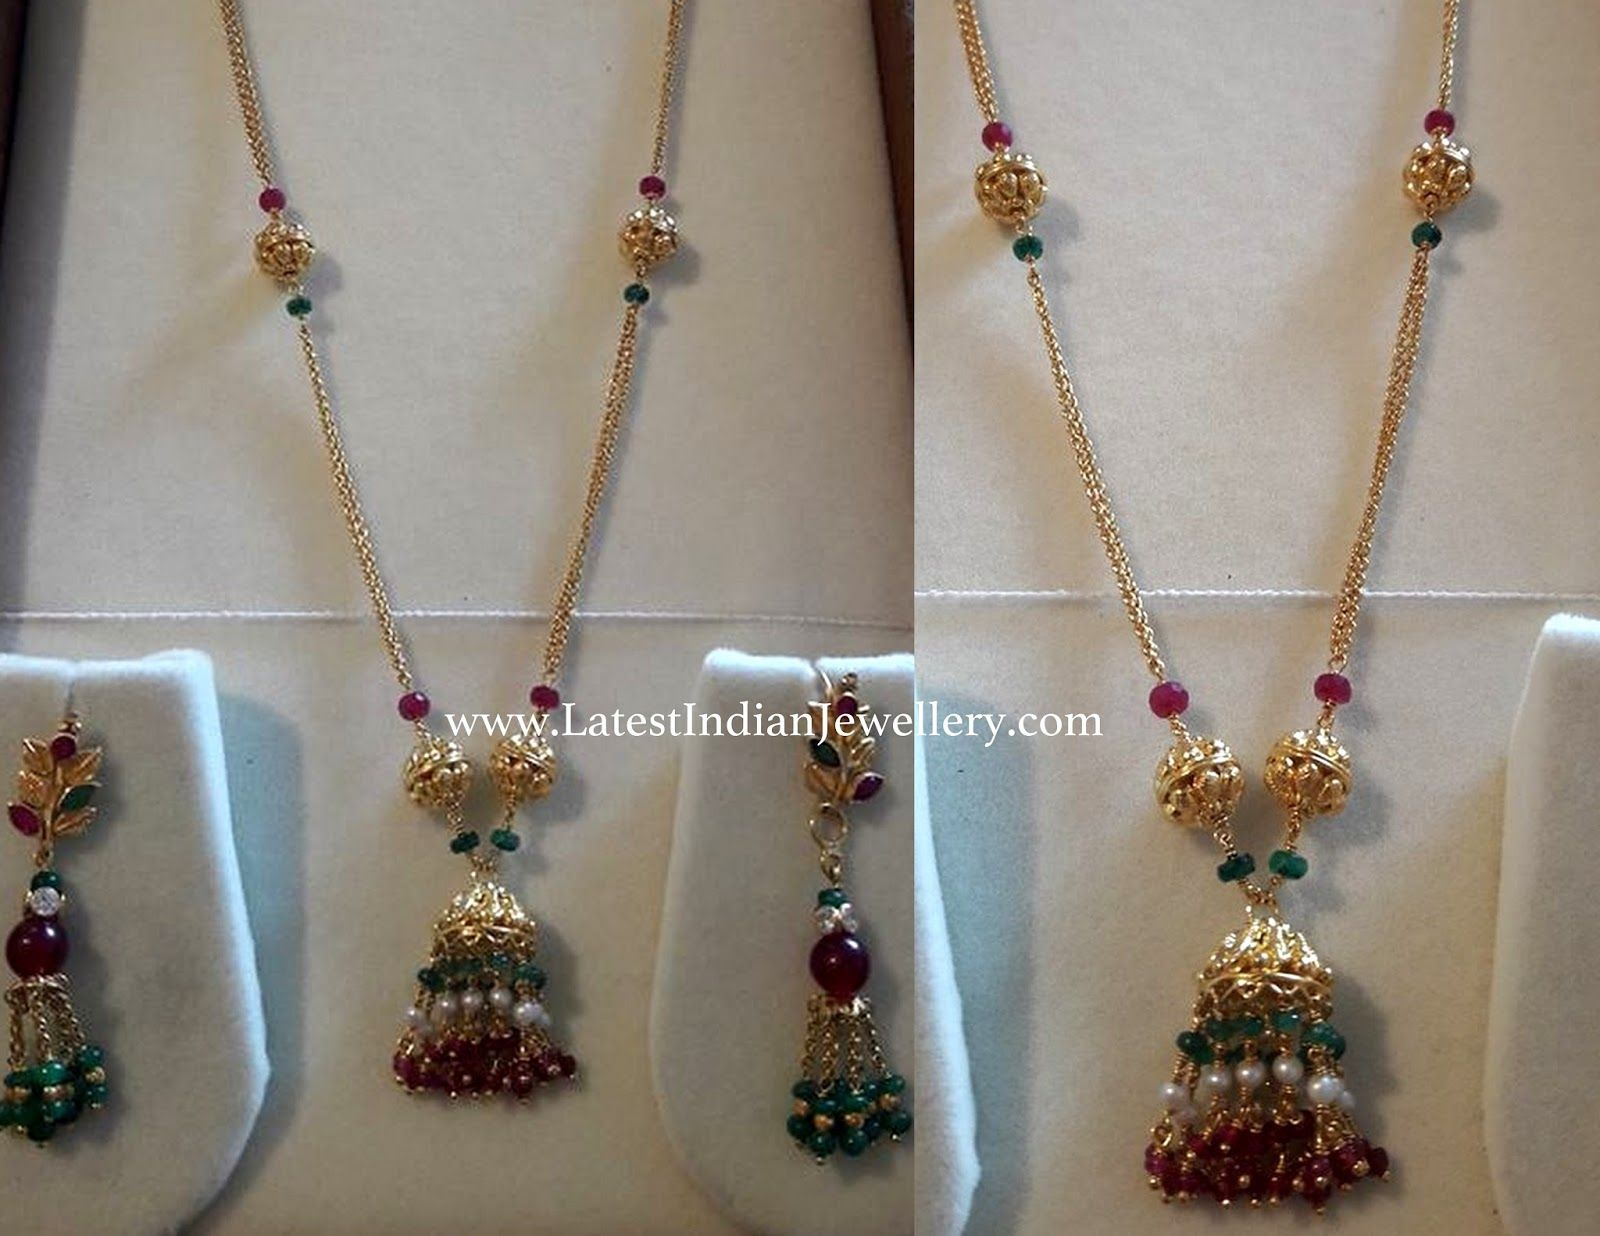 22 carat gold floral designer pendant with multiple beads chain and - Light Weight And Trendy Gold Chain With Jhumka Design Pendant Attached Along With Gold Balls And Ruby Emerald Beads Is Paired With Light Weight Gold